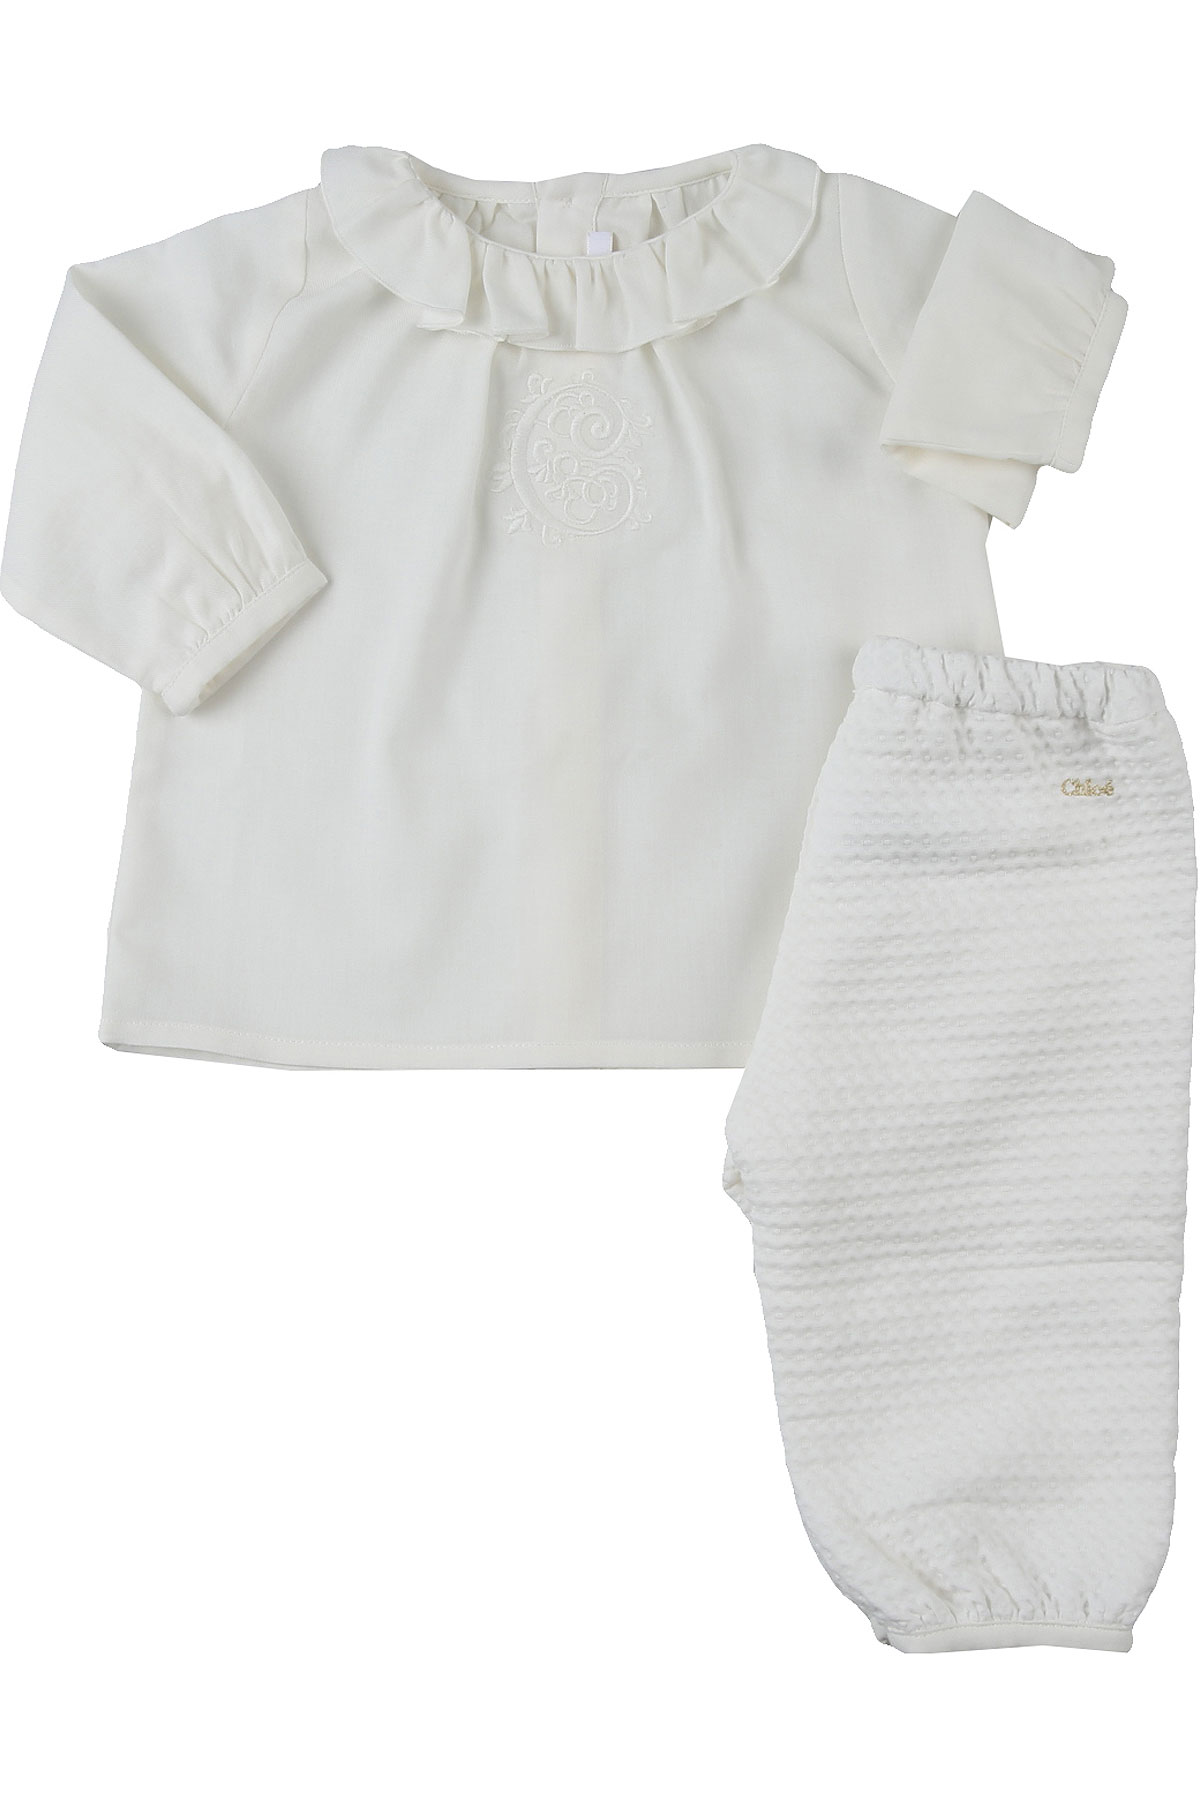 Chloe Baby Sets for Girls On Sale, White, Cotton, 2019, 12M 18M 3M 6M 9M